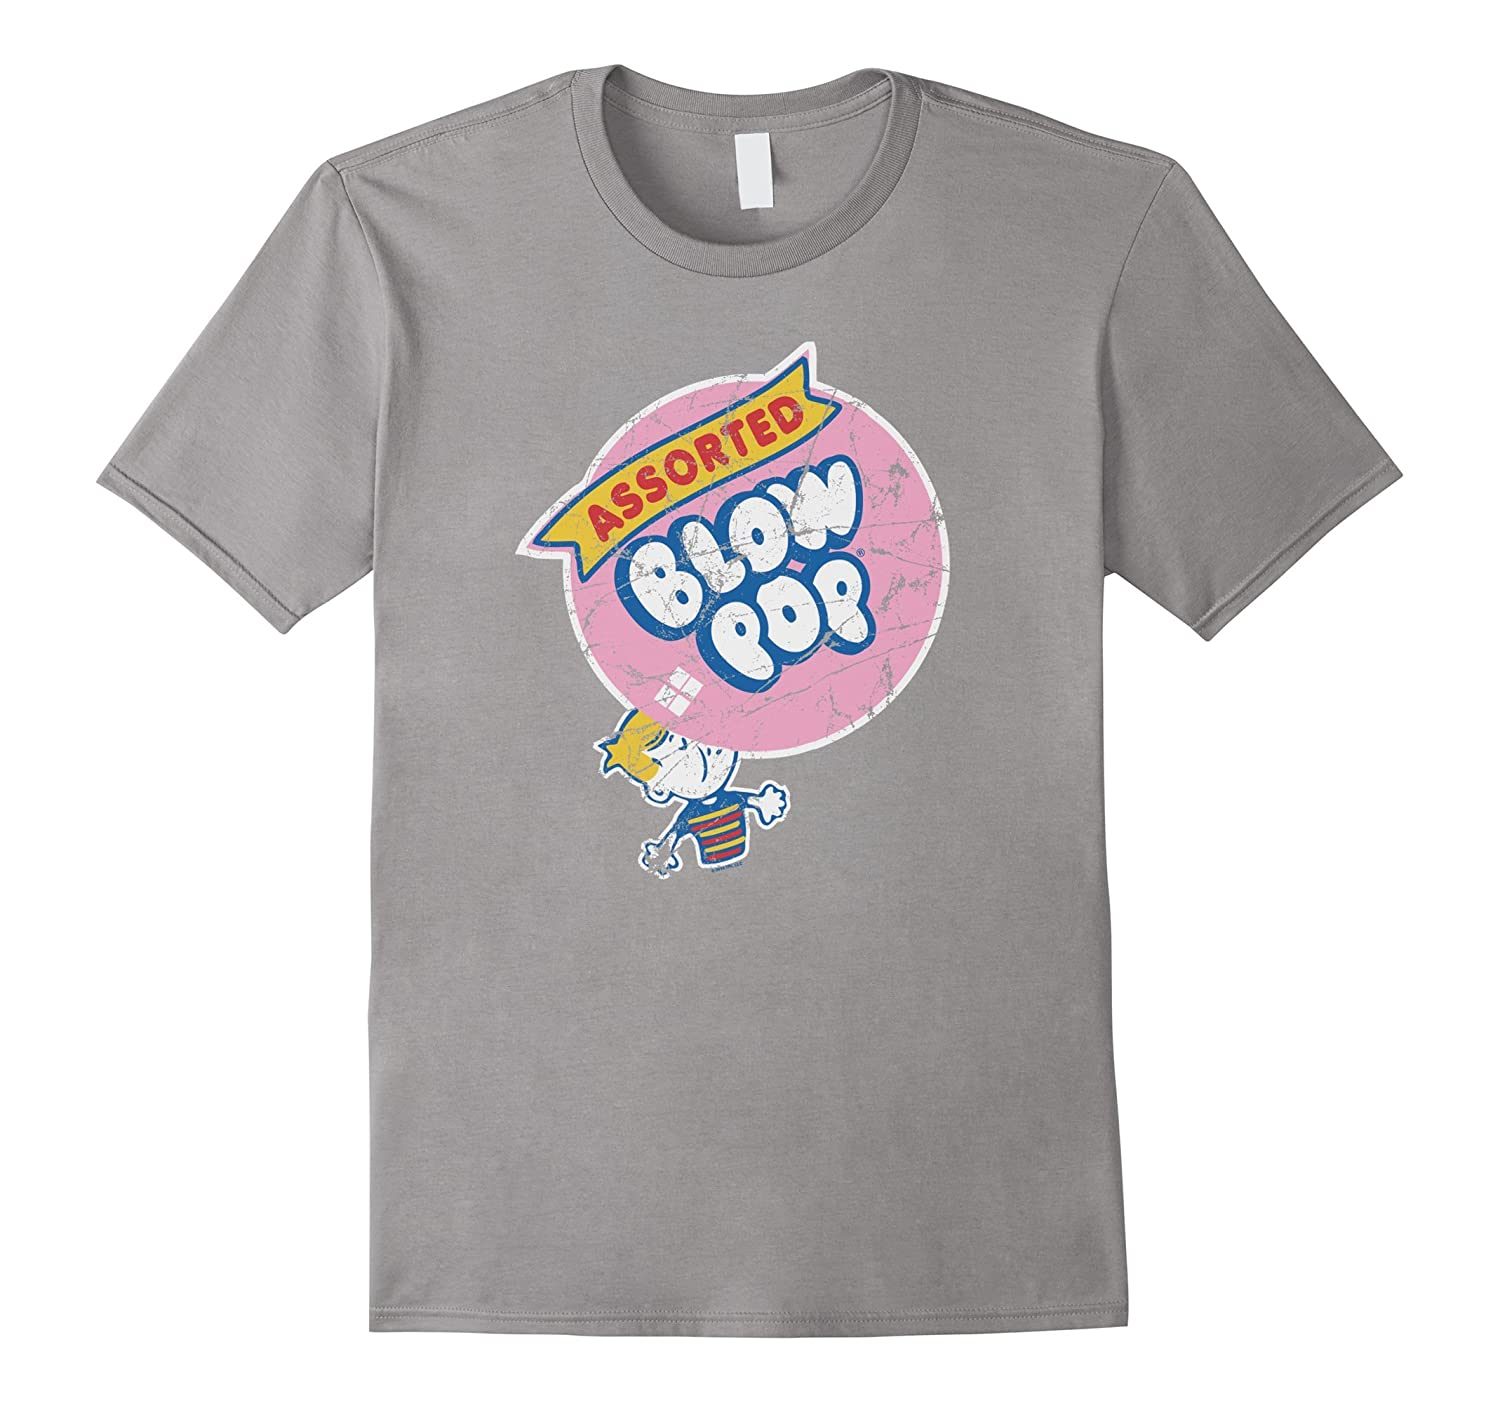 Blow Pop T-Shirt  Classic Look style  10509-Vaci